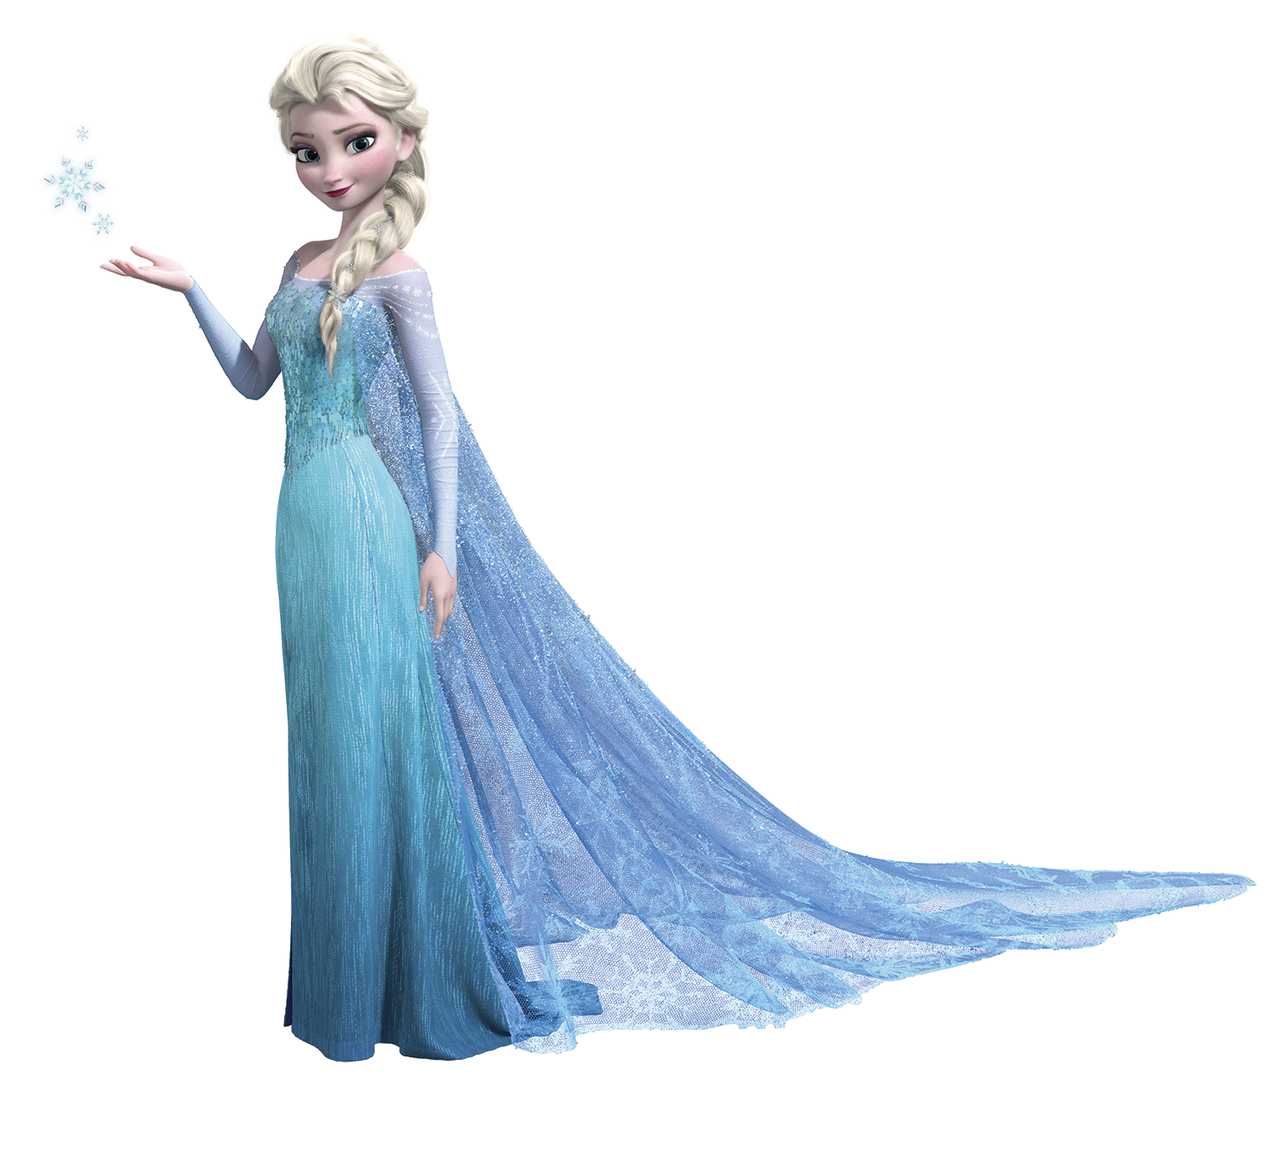 Elsa - Frozen Photo (35828419) - Fanpop